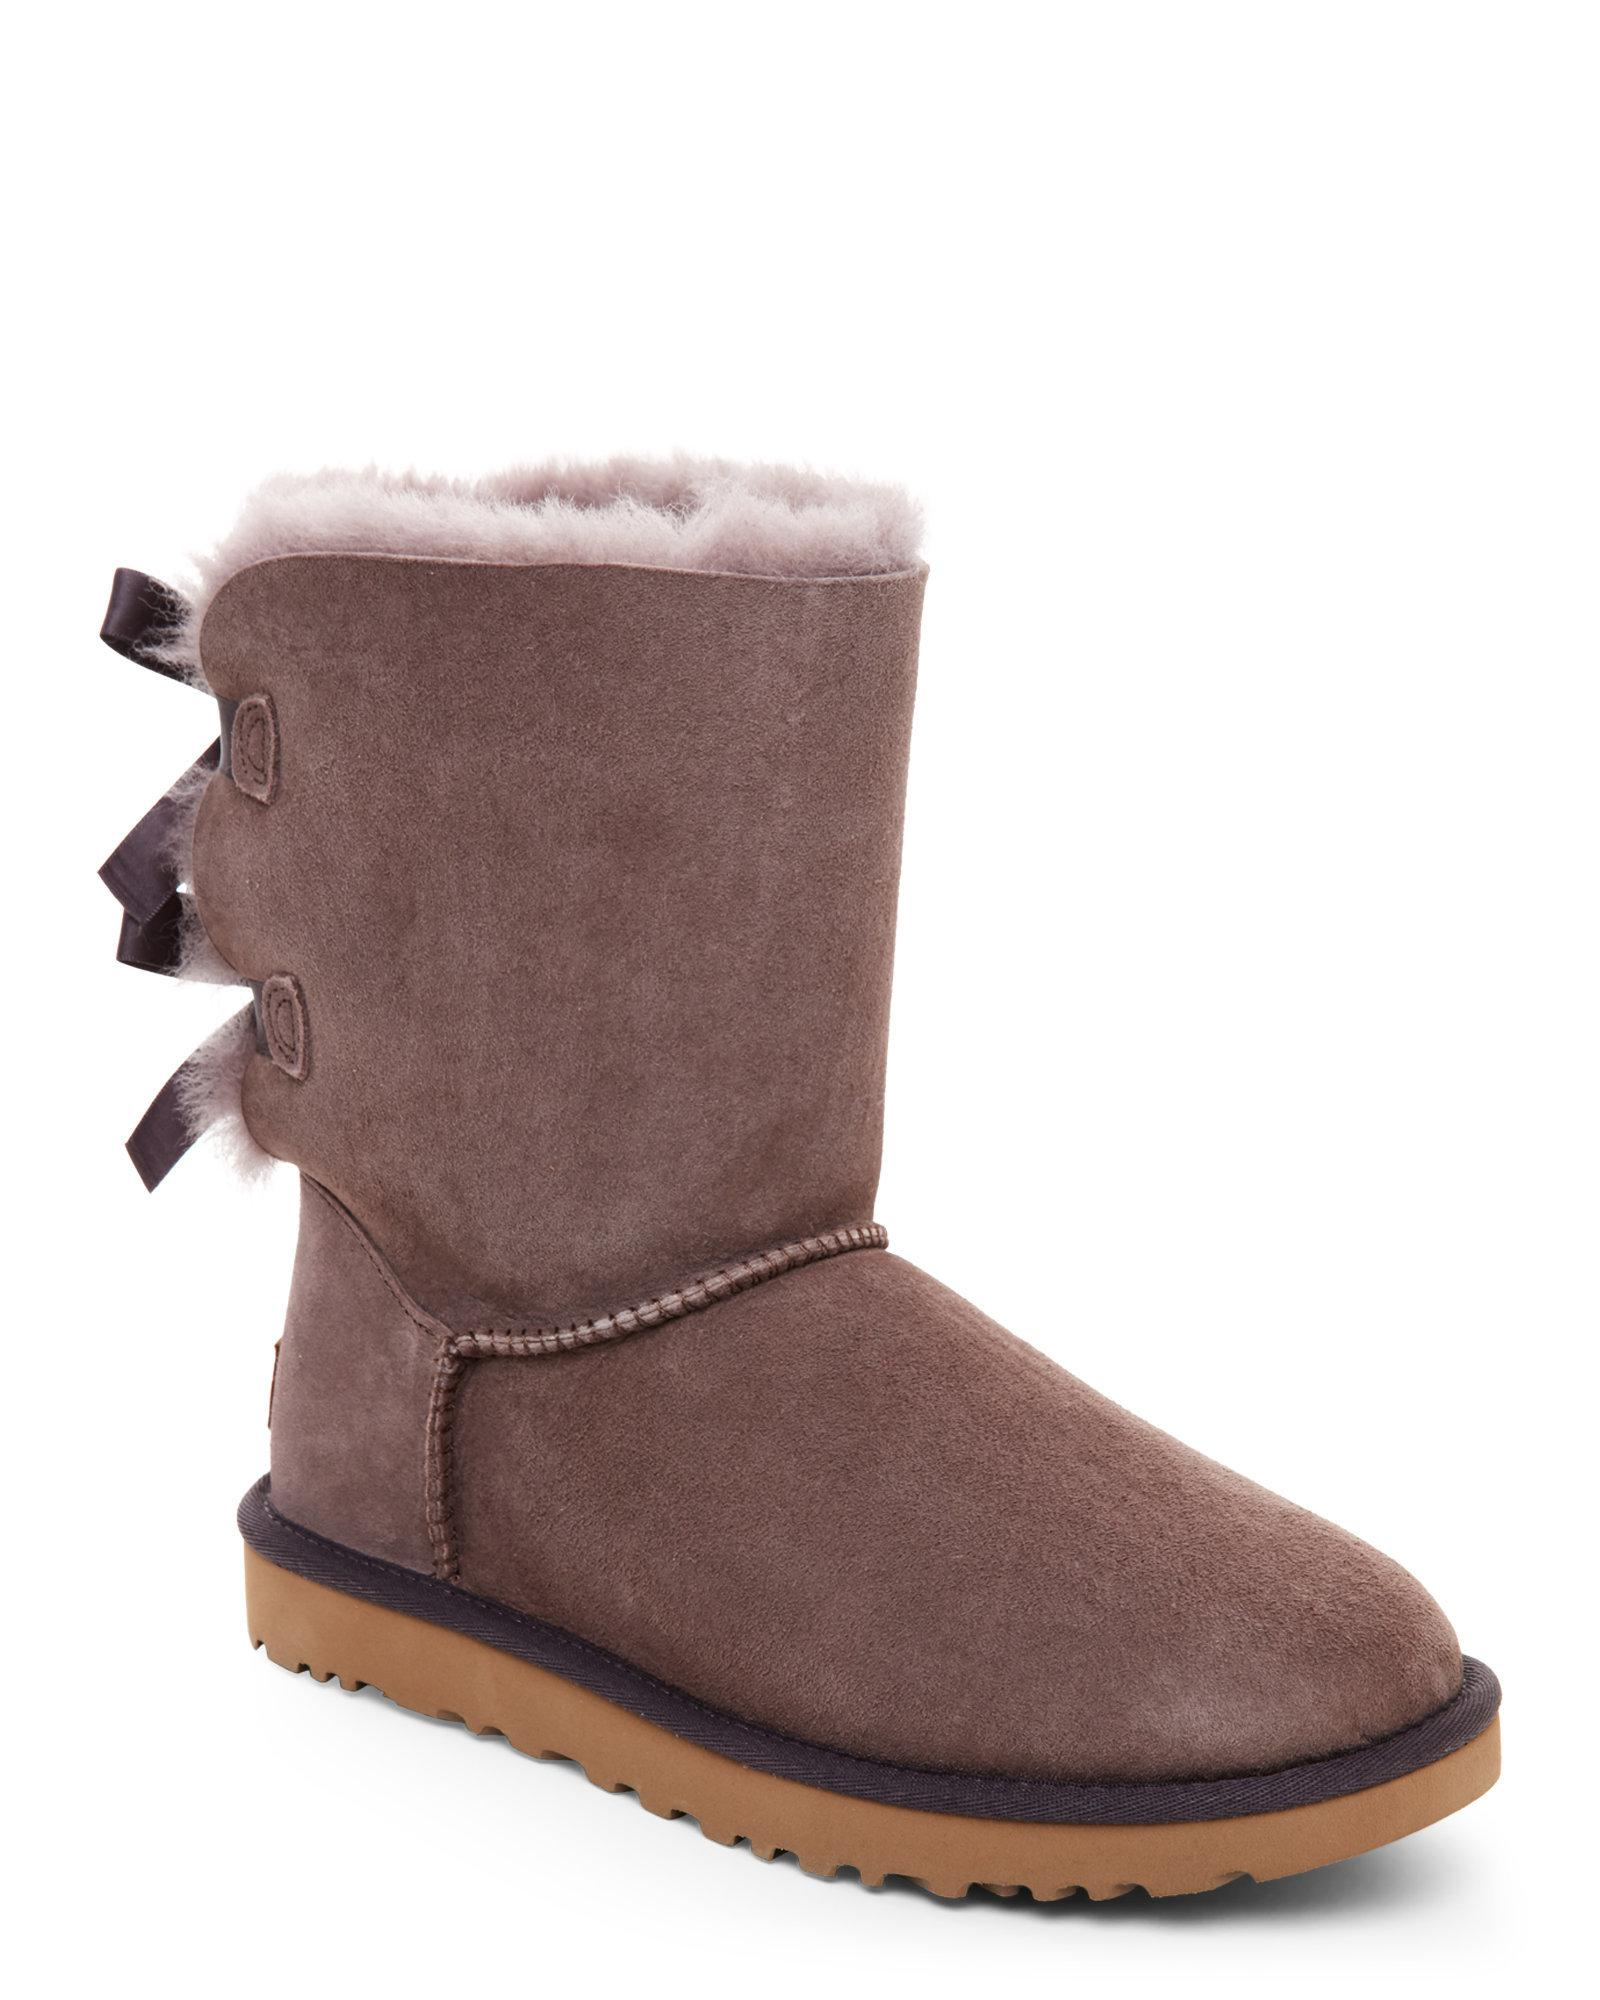 lyst ugg storm grey bailey bow ii boots in gray rh lyst com